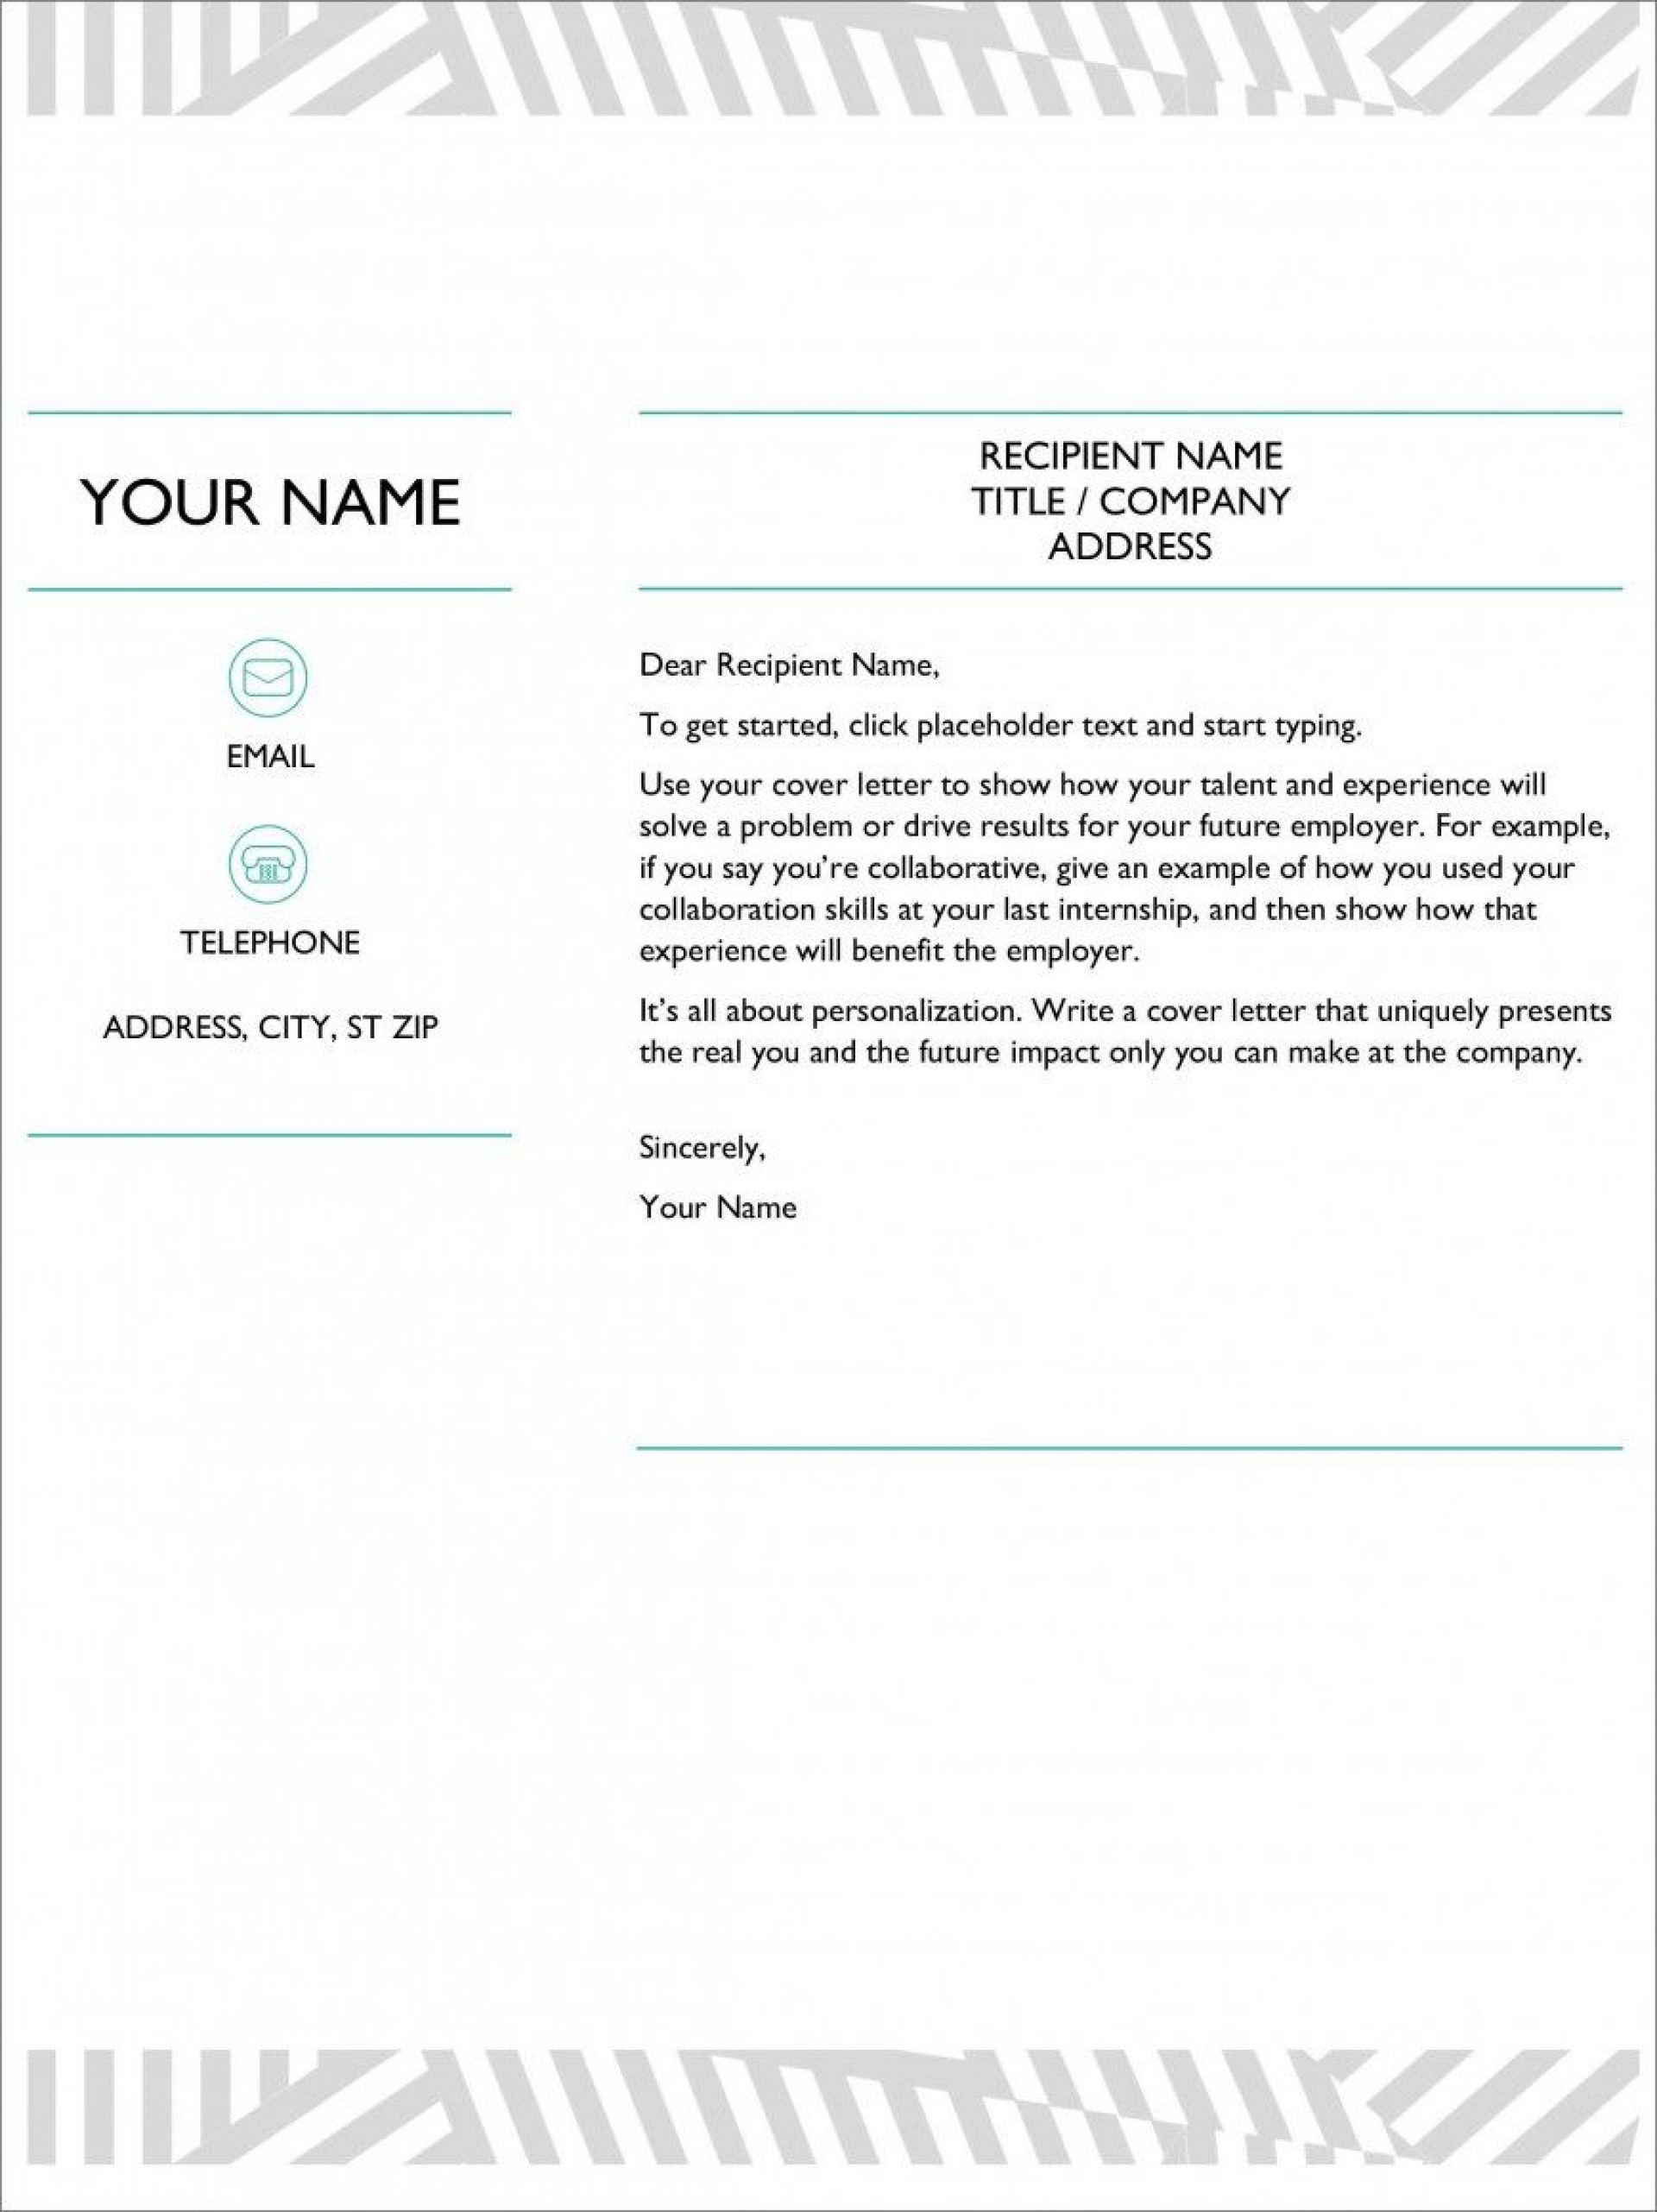 009 Astounding Resume Cover Letter Template Microsoft Word Example 1920